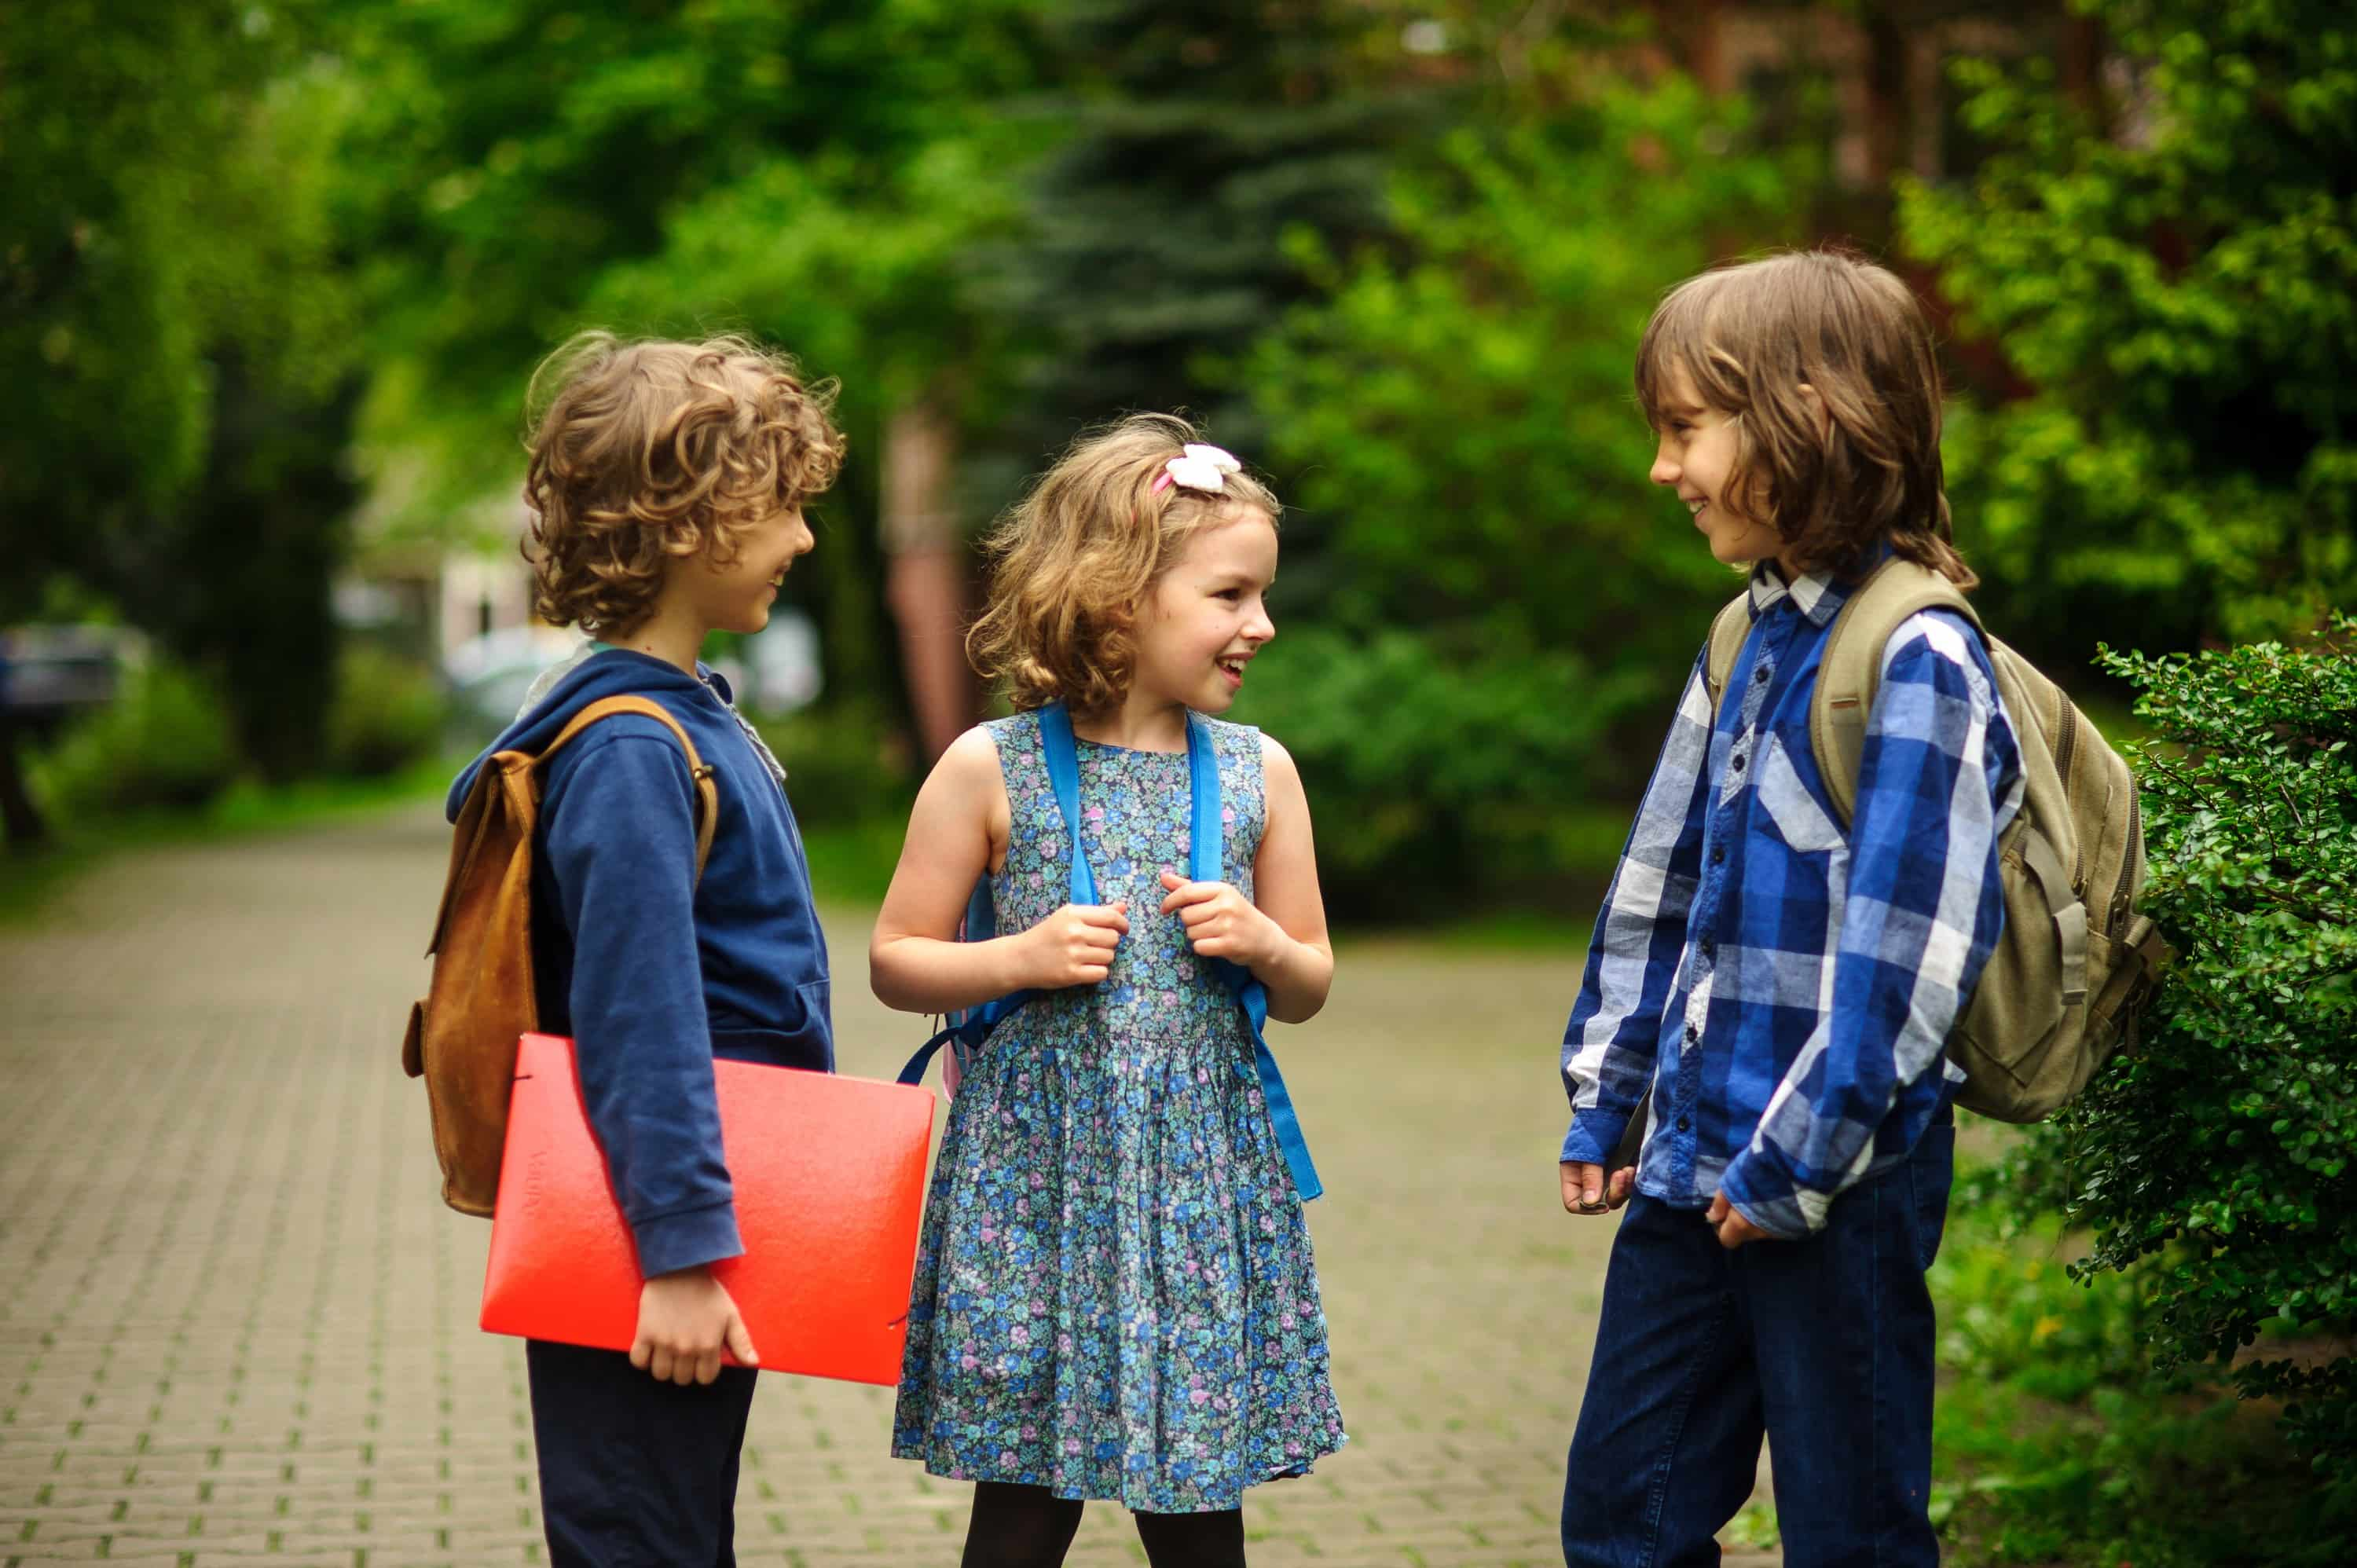 The Best and Worst Ways to Raise Emotionally Intelligent Children